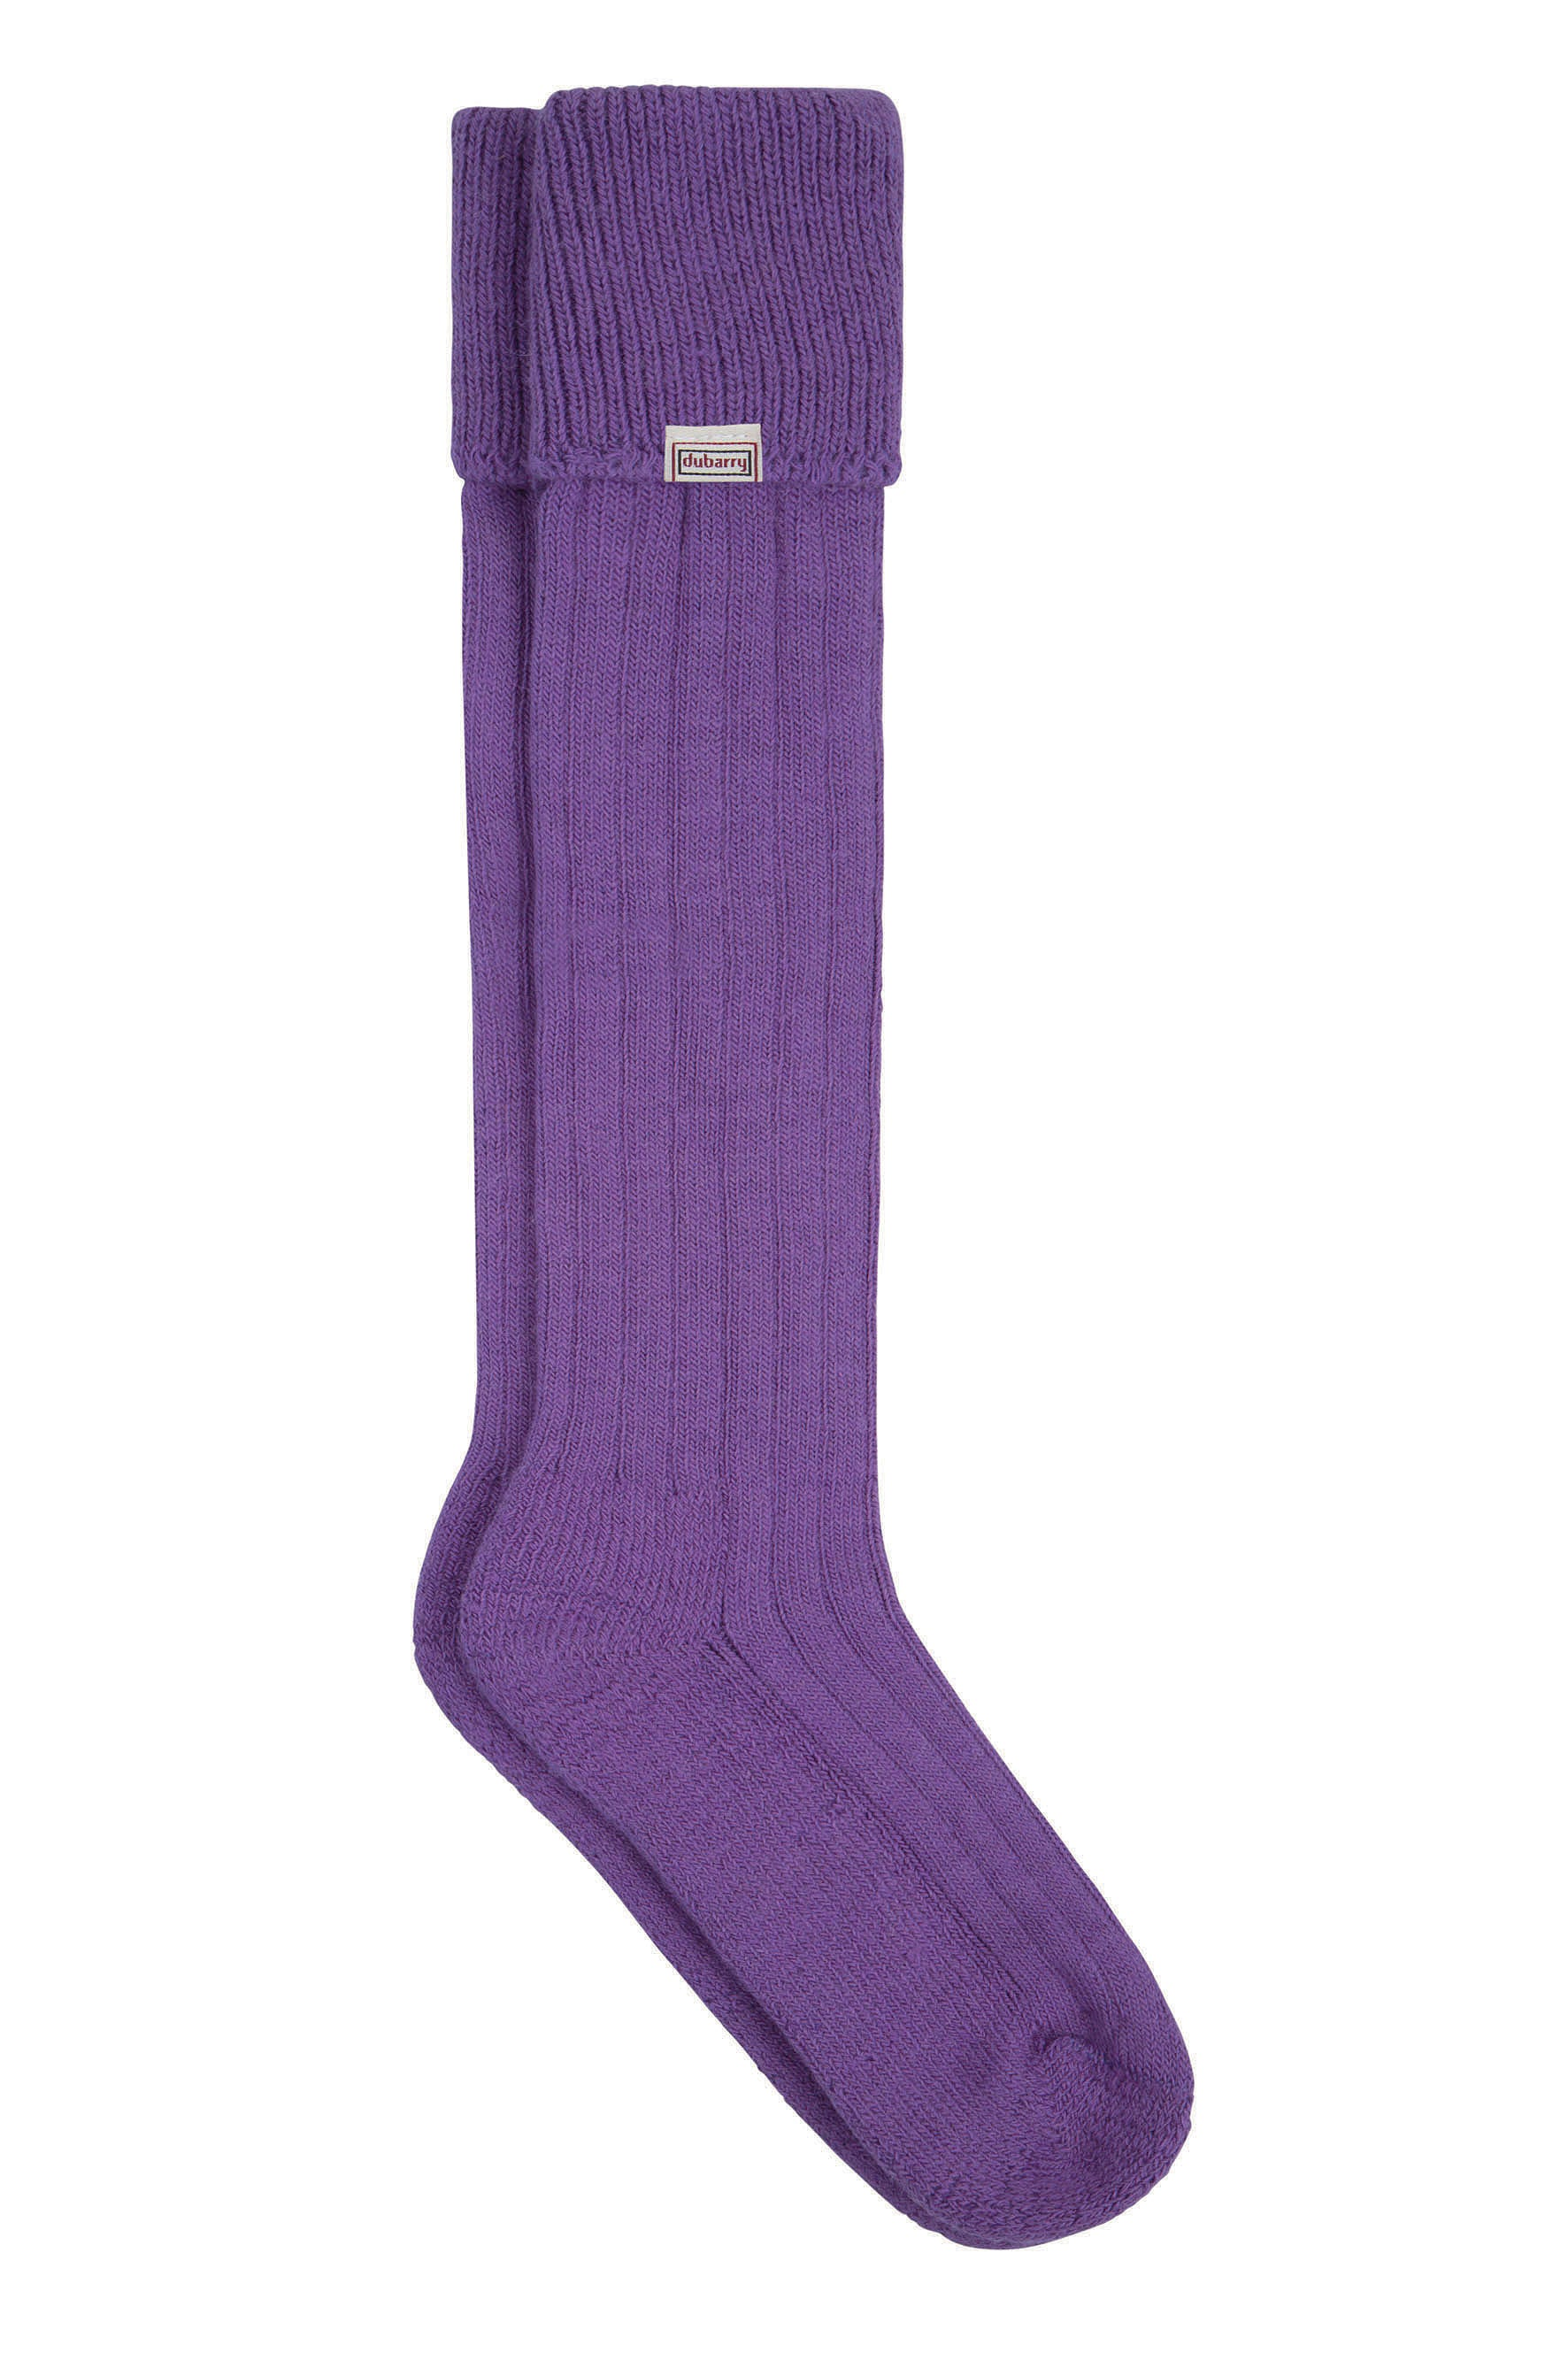 Dubarry Alpaca Socks For Ladies in Purple